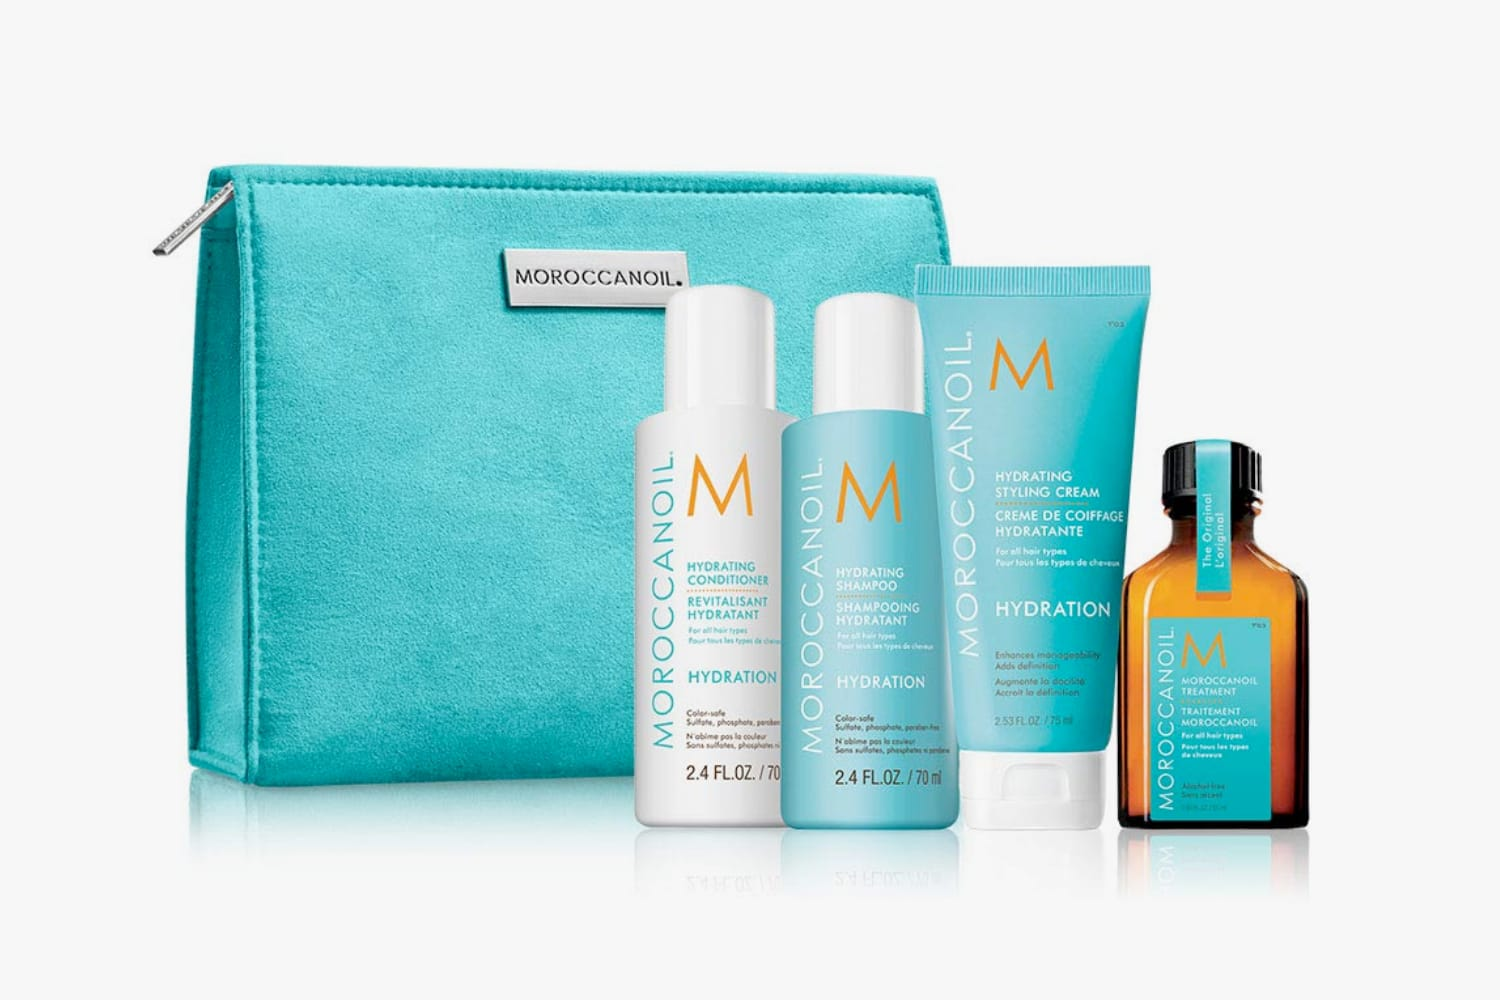 Moroccanoil Travel Essentials Style Kit